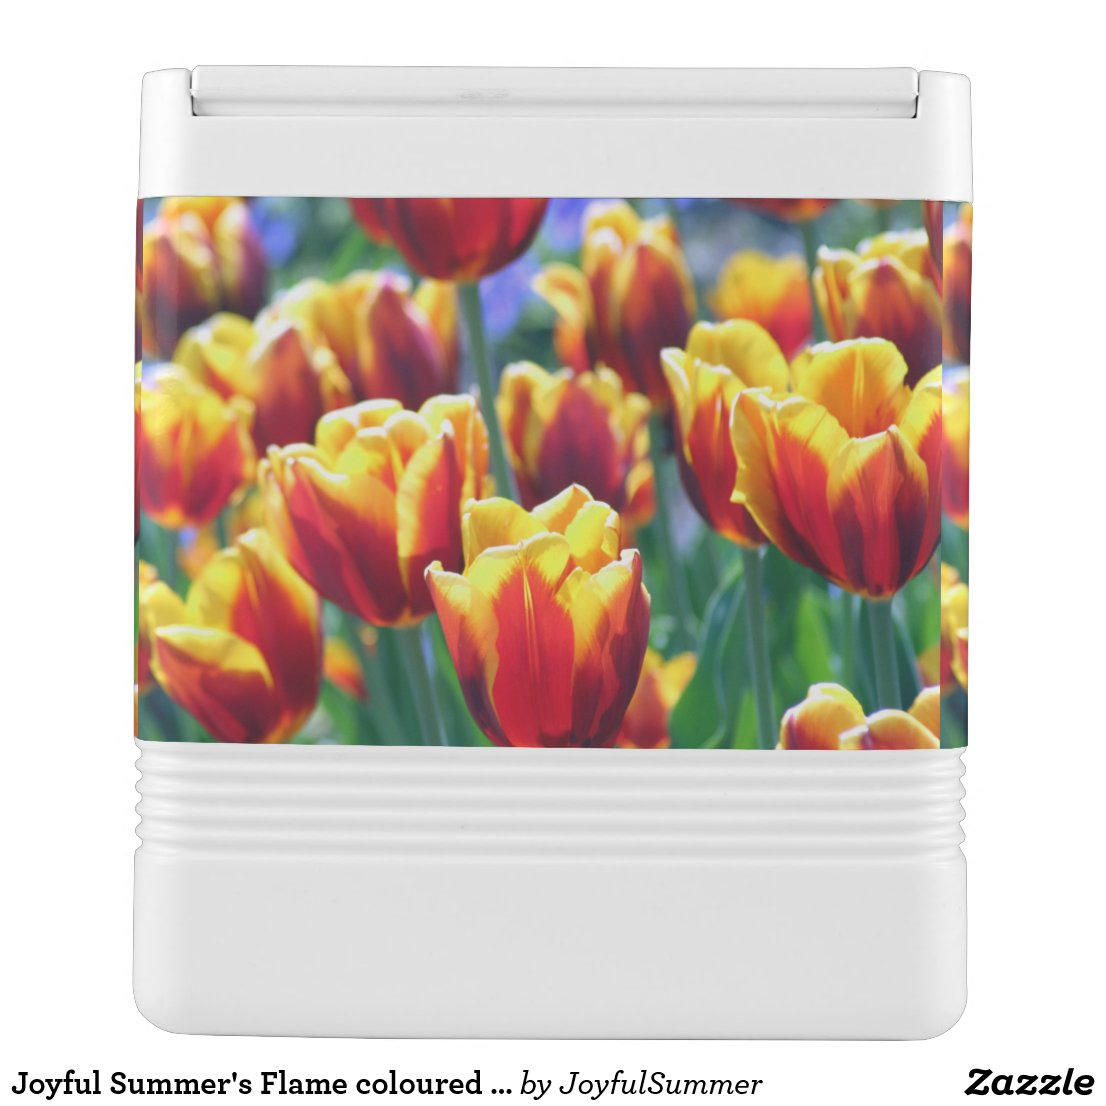 Joyful Summer's Flame coloured Tulips Igloo Cool Box